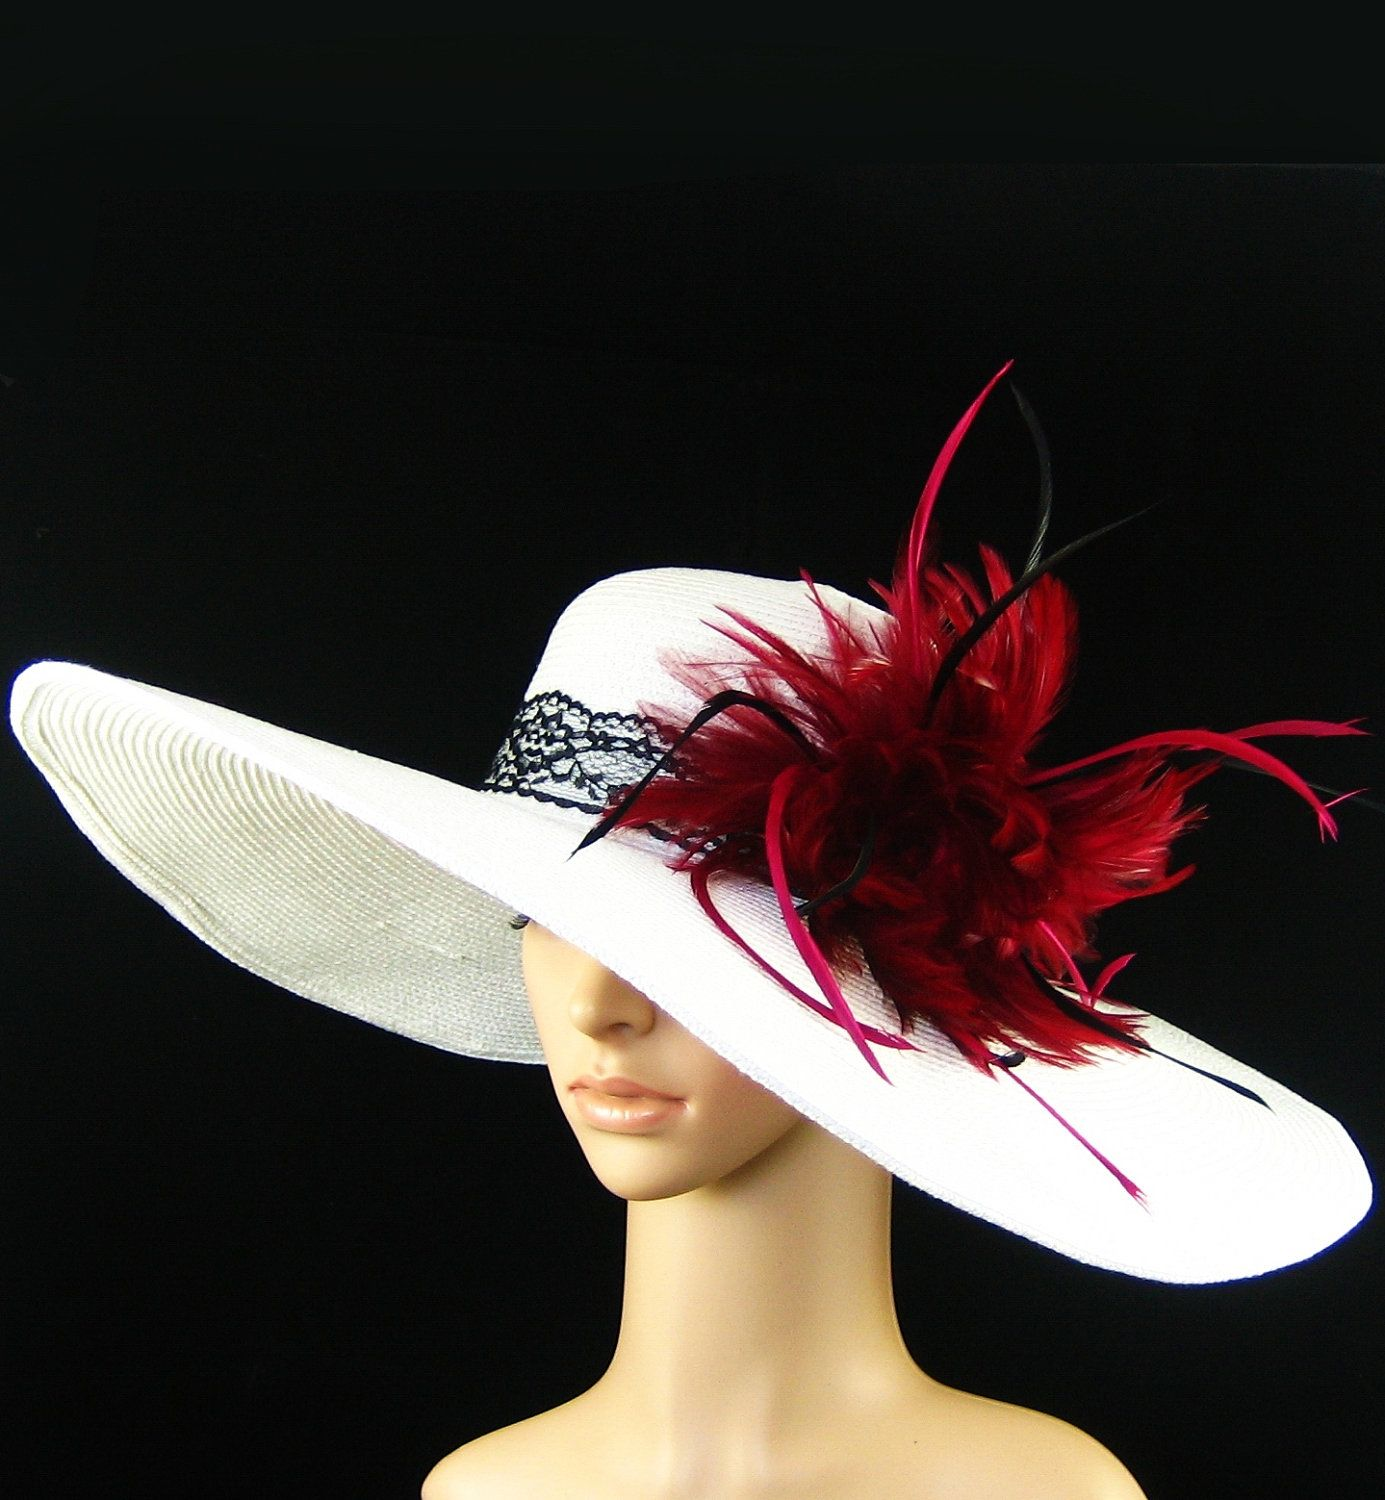 Derby Hat Kentucky Derby Hat Wedding Hat Tea Party Hat Wide Brim White Hat  Feathers Woman Dress Bridal Church Ascot Horse Race.  59.97 f64a9989e7ab